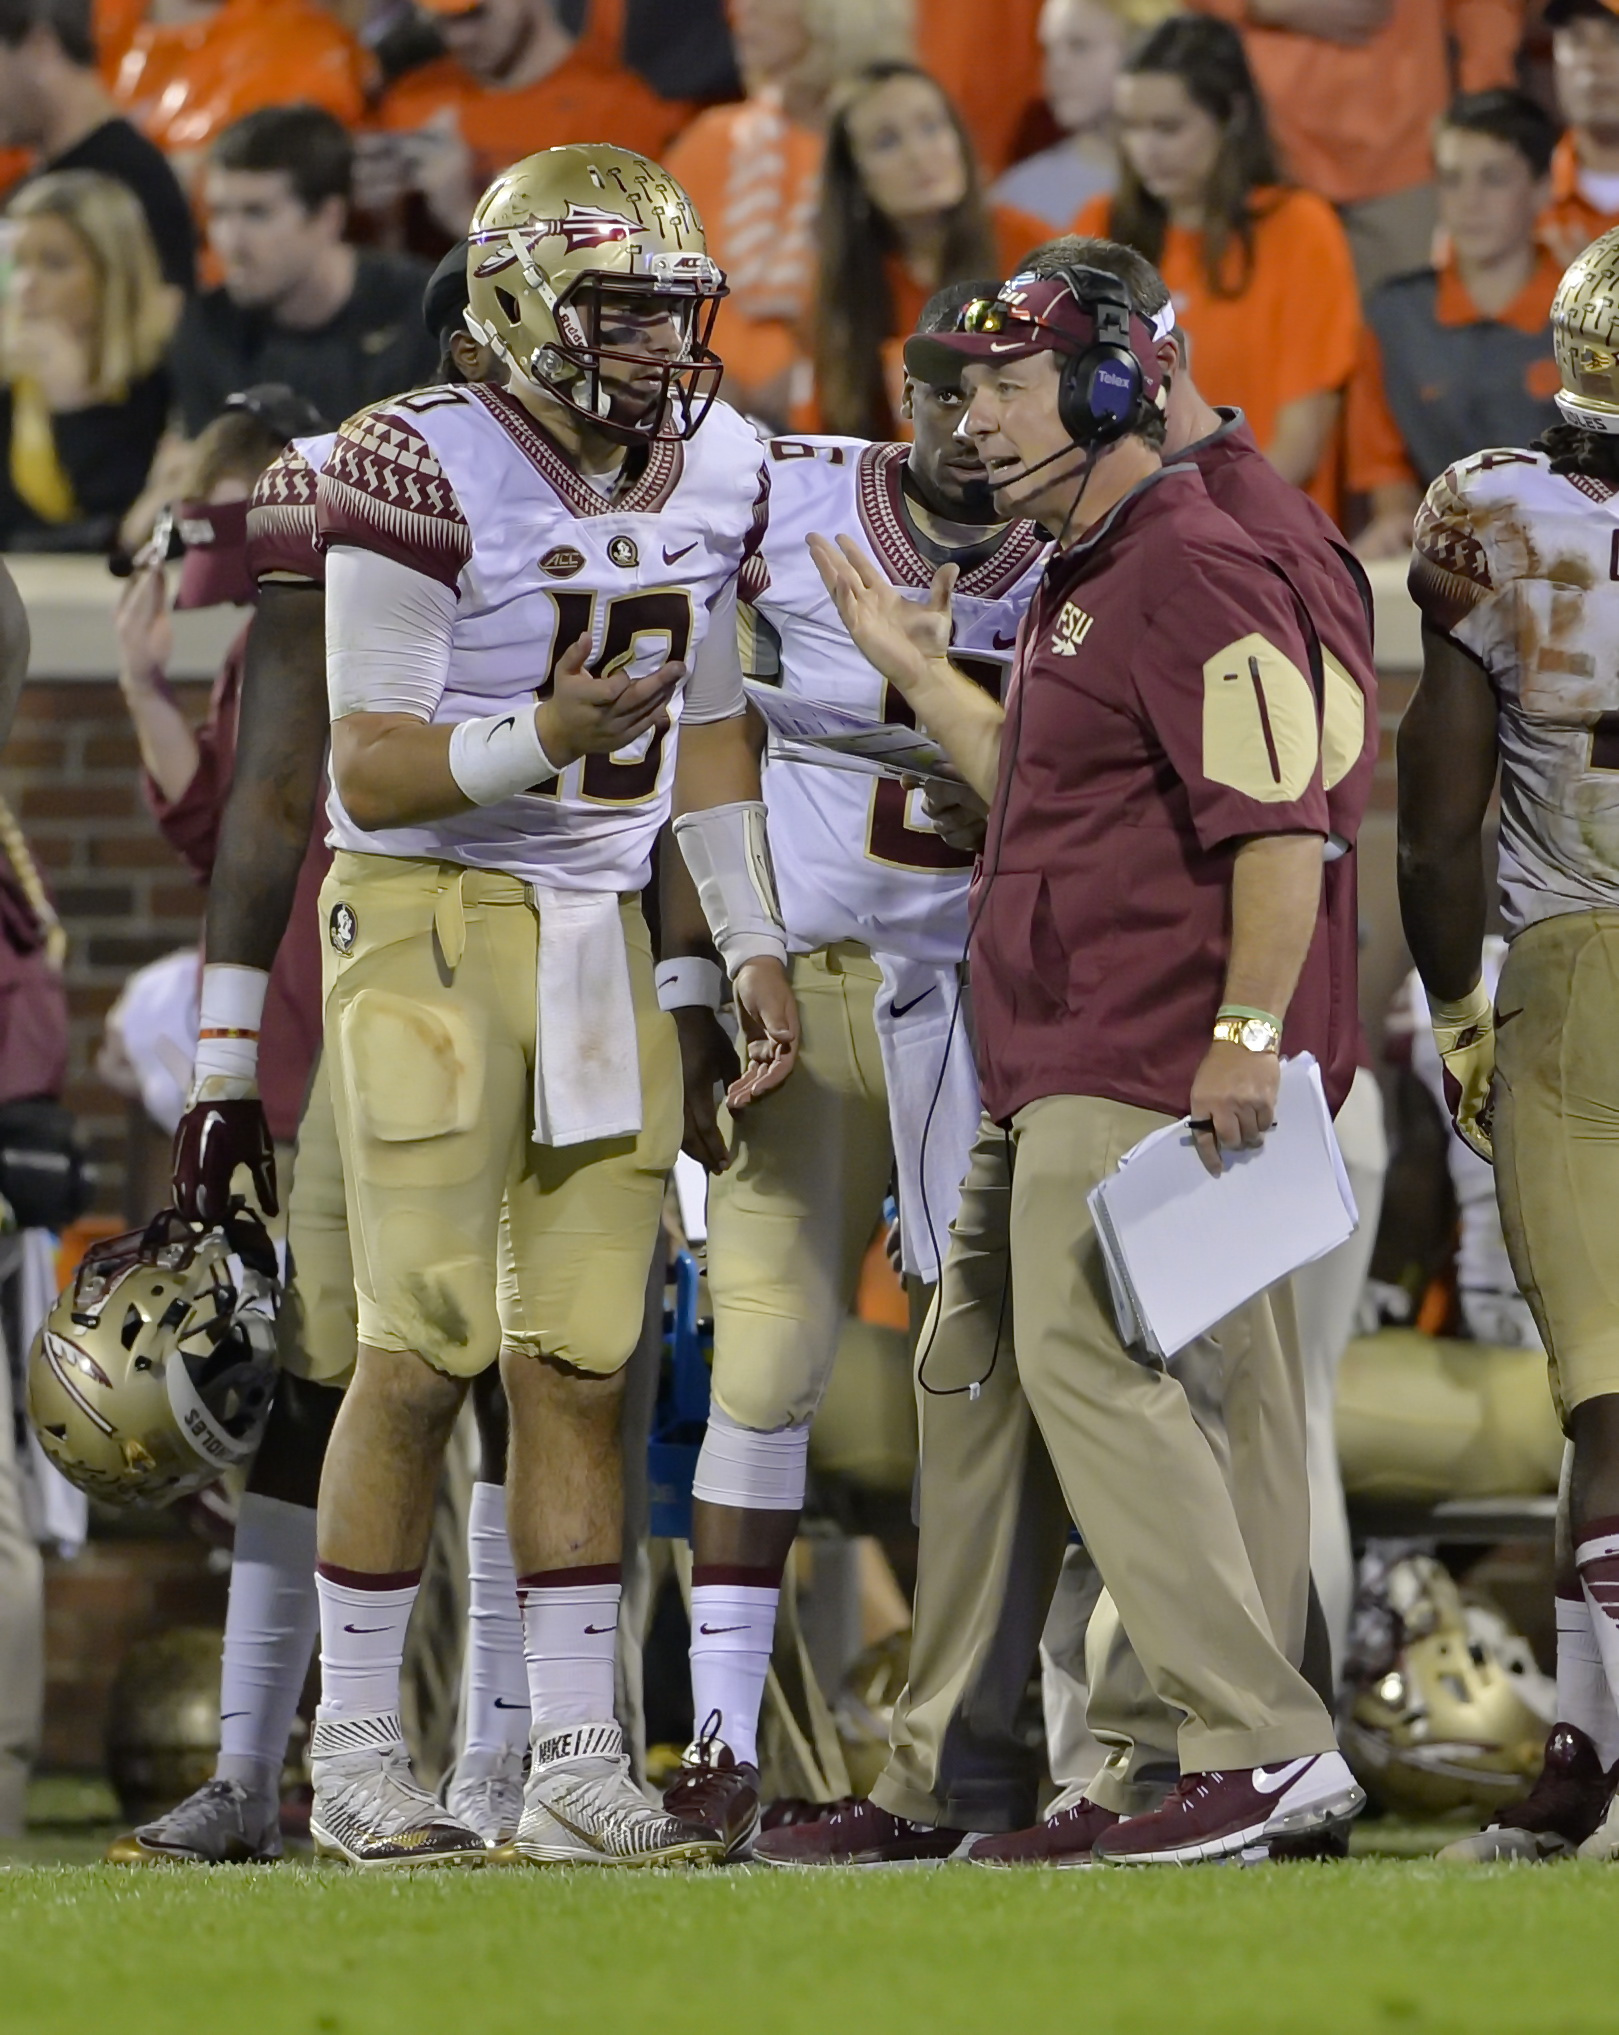 Florida State head coach Jimbo Fisher, right, talks to quarterback Sean Maguire during the second half of an NCAA college football game against Clemson Saturday, Nov. 7, 2015,  in Clemson,  S.C.  Clemson won 23-13. (AP Photo/Richard Shiro)